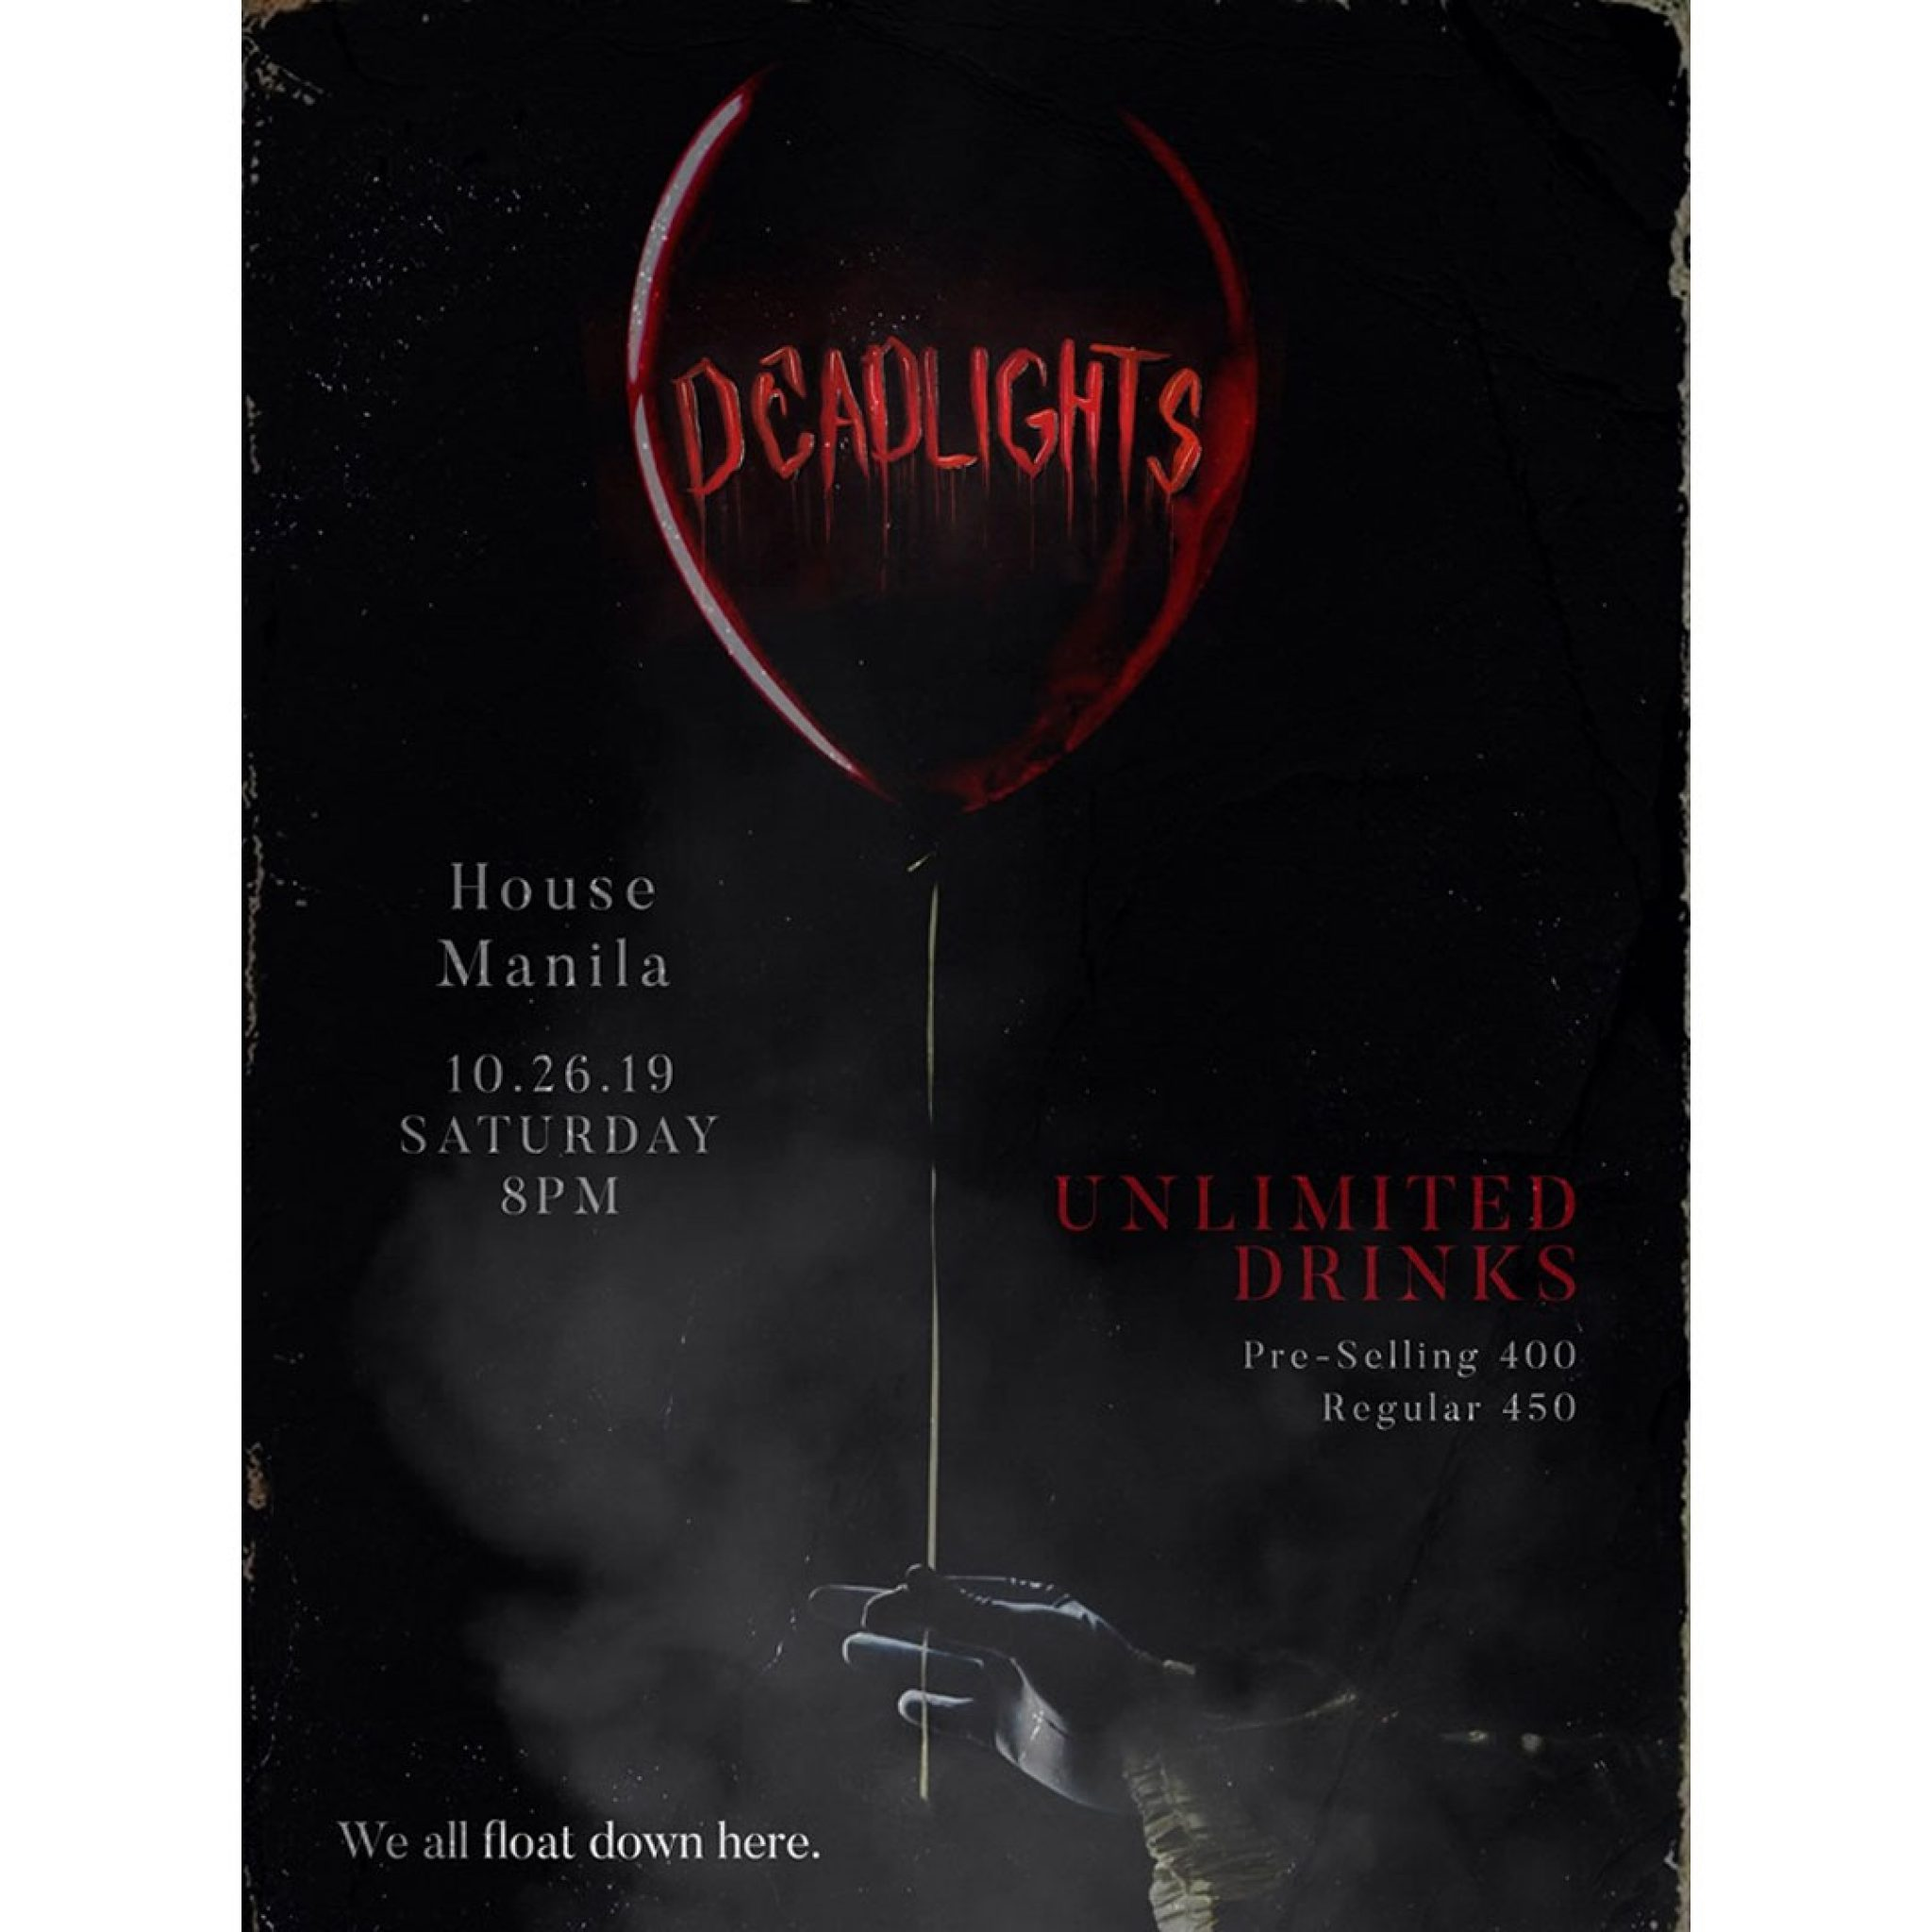 Deadlights